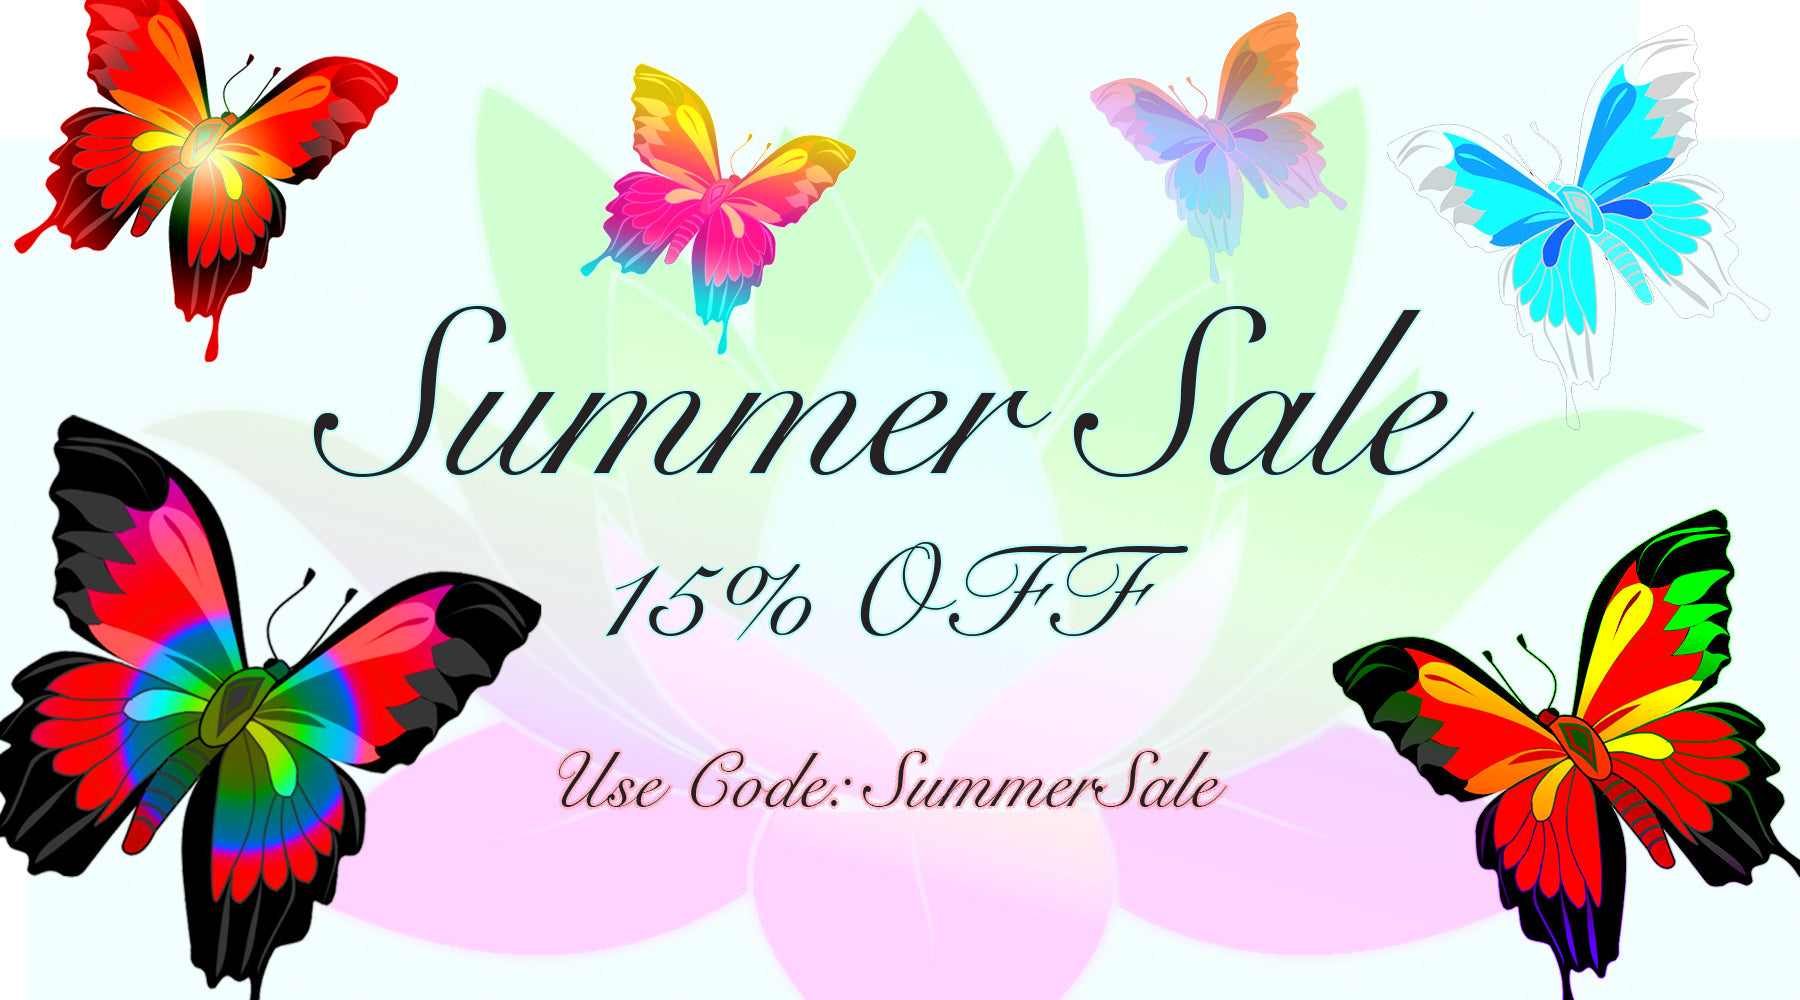 Summer Sale Banner: use summersale for 15% OFF